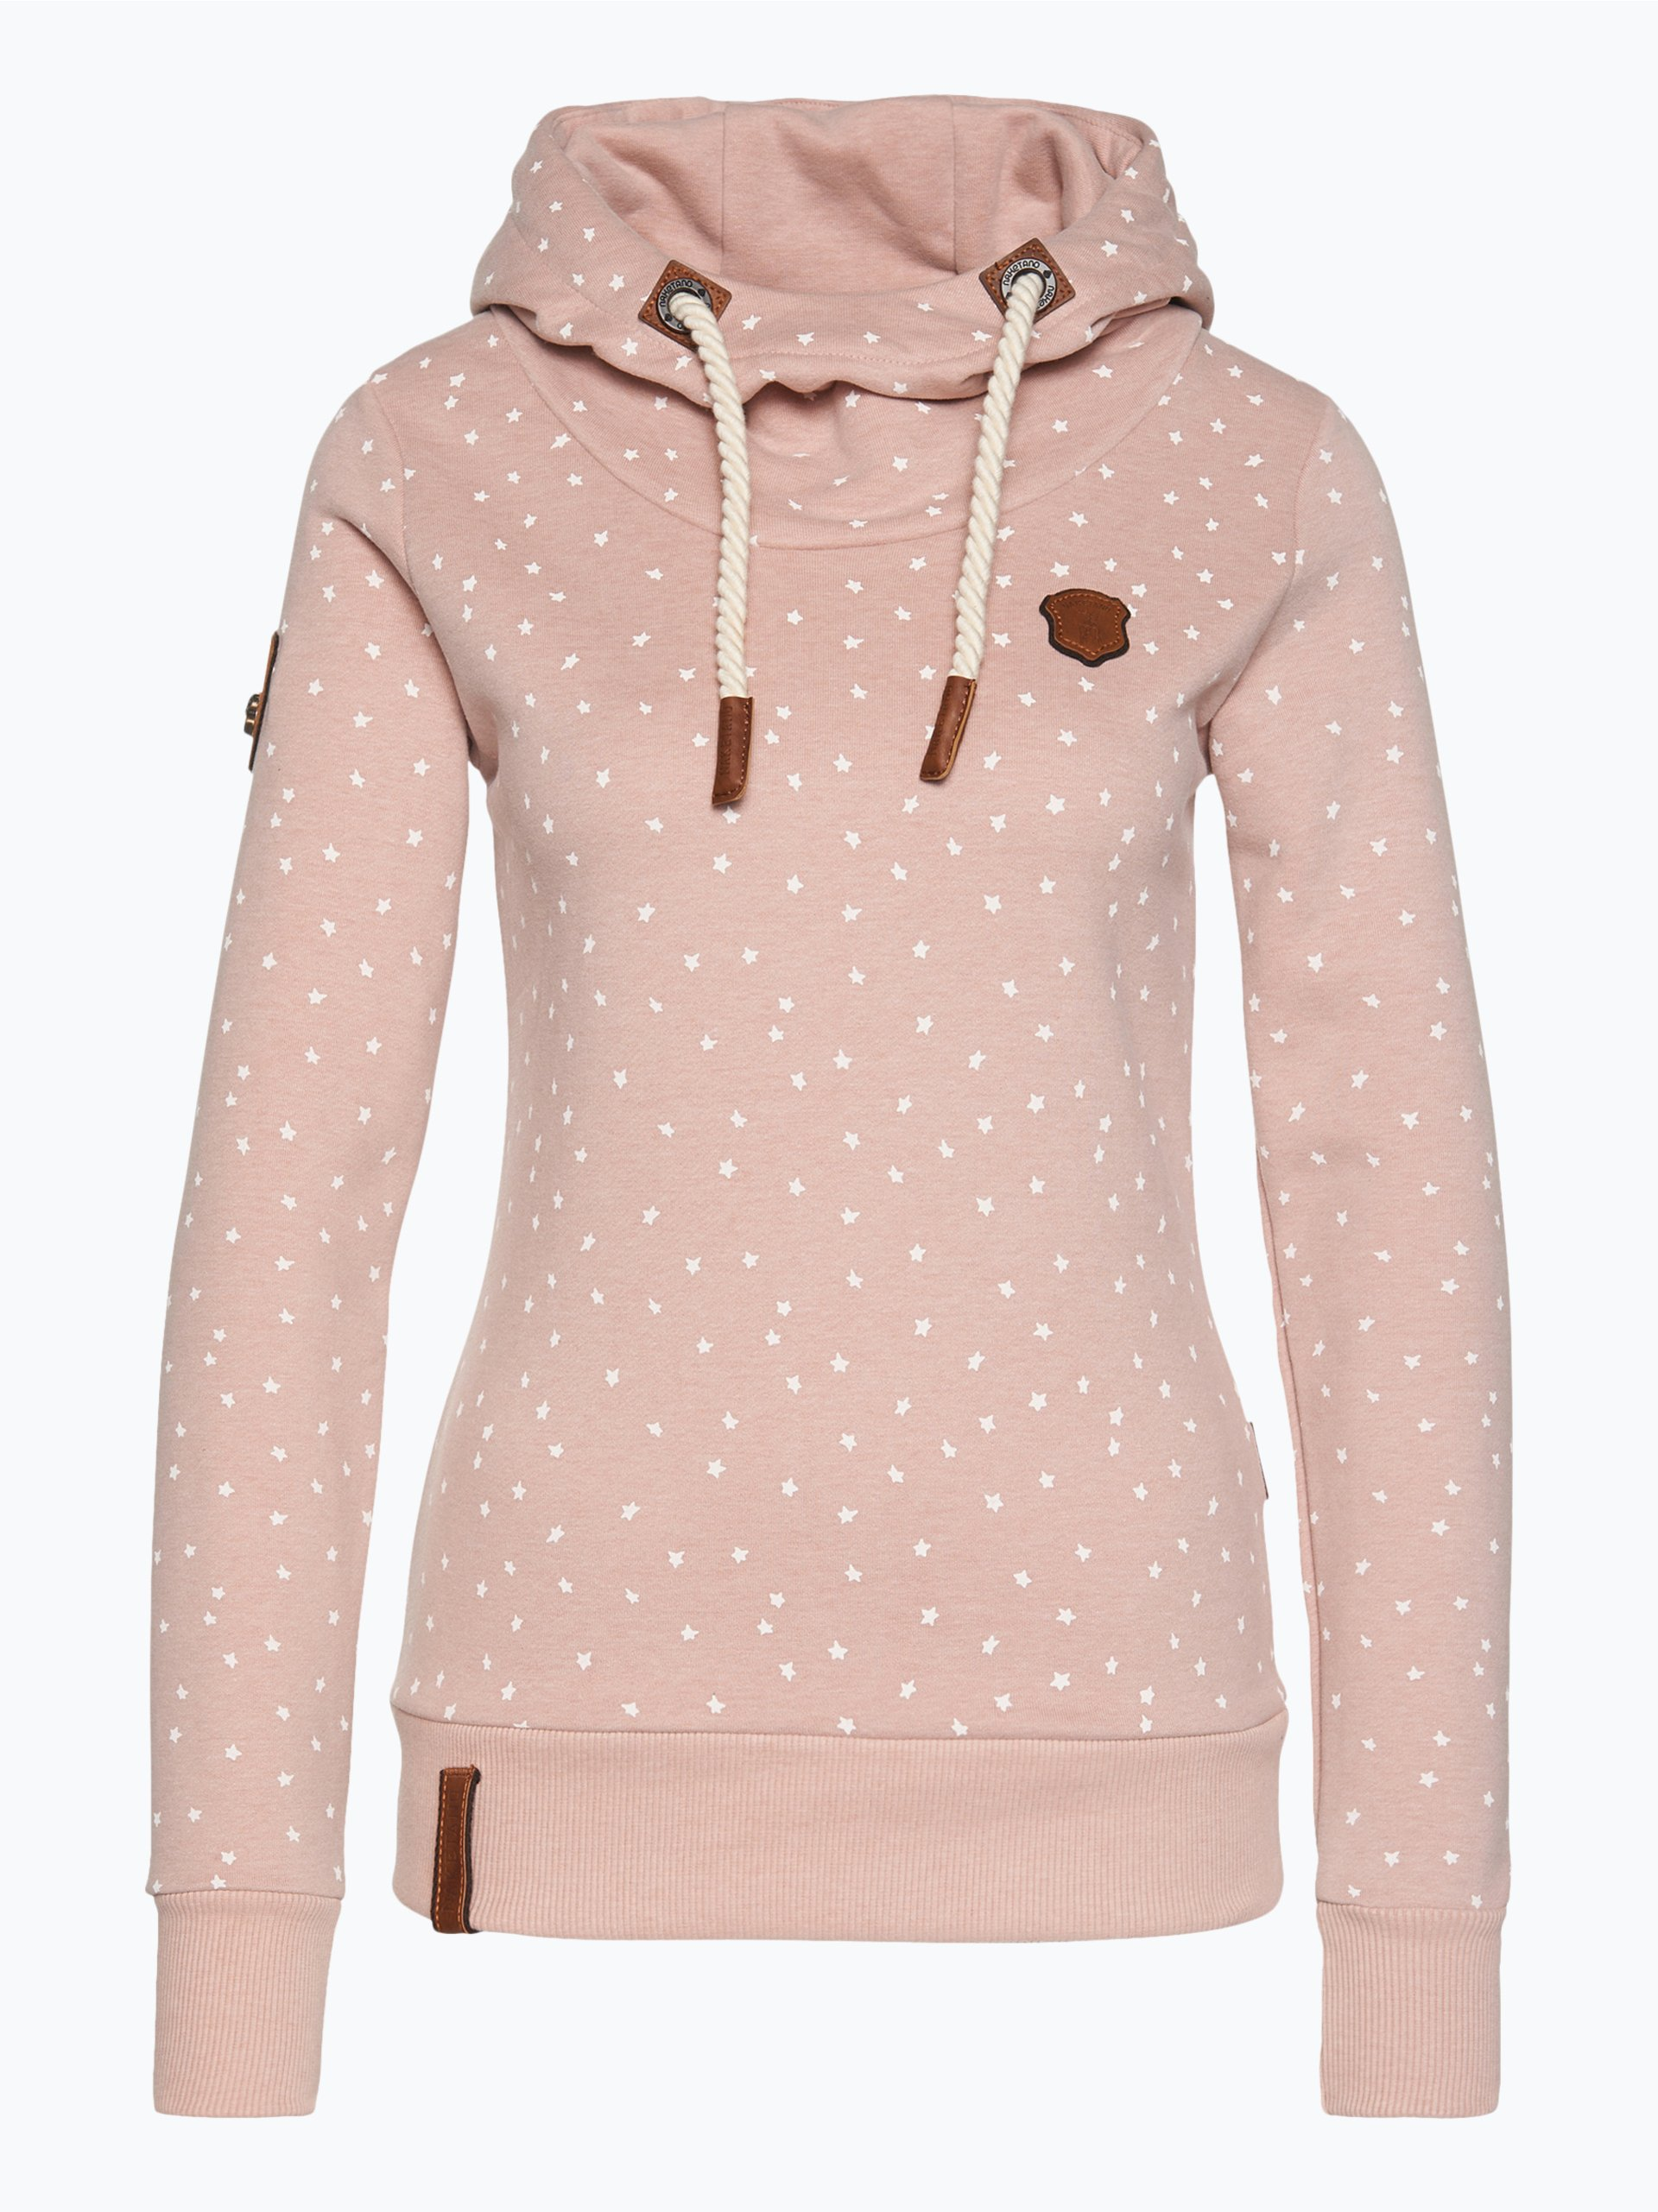 naketano damen sweatshirt put the d on me rosa gemustert online kaufen vangraaf com. Black Bedroom Furniture Sets. Home Design Ideas